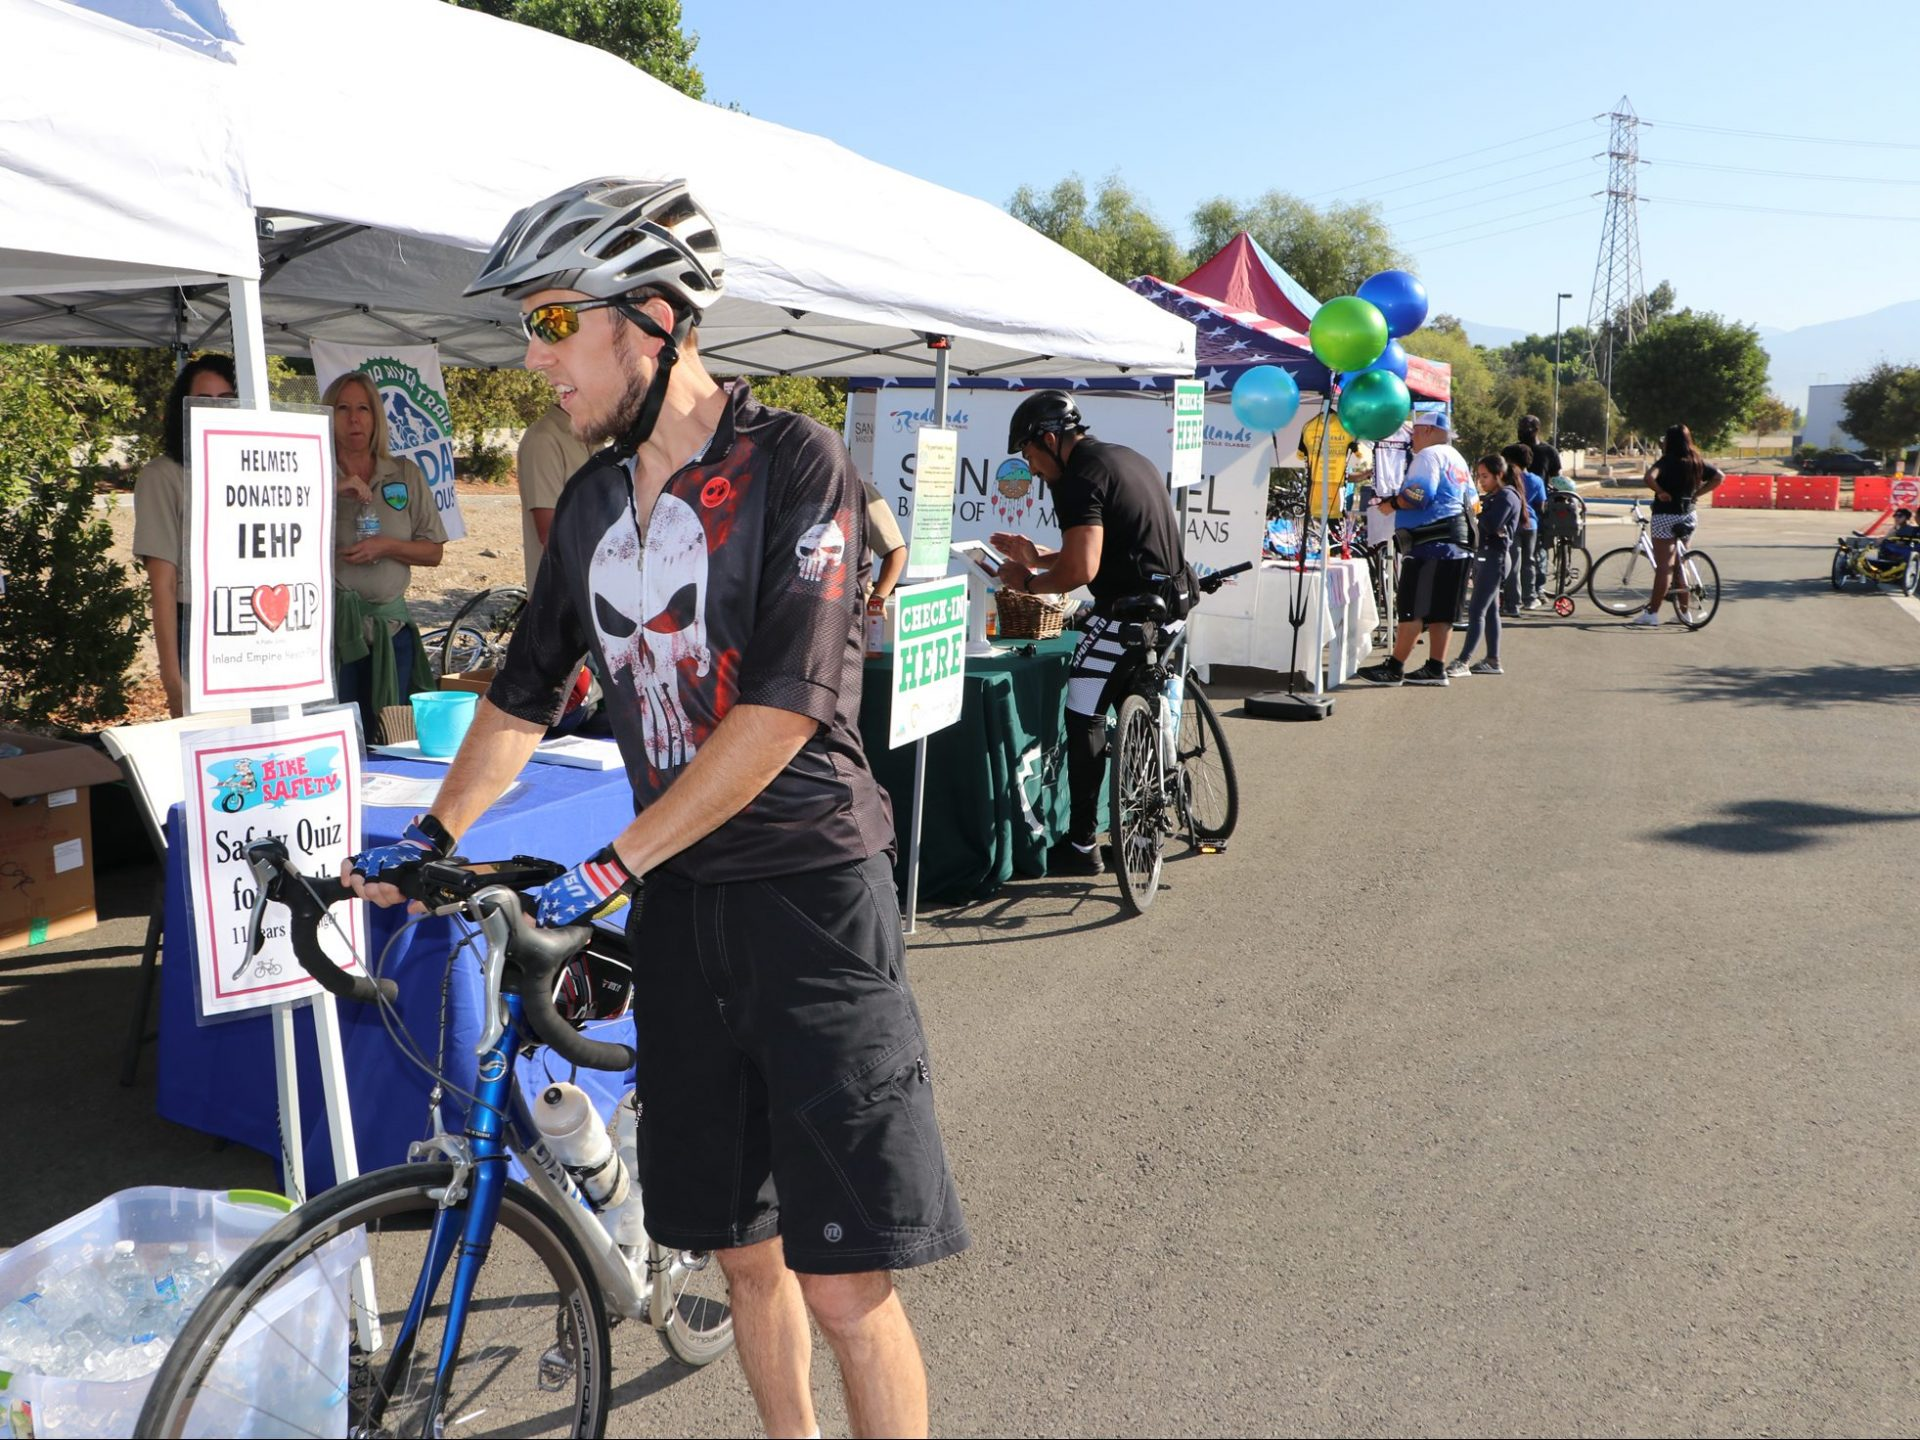 People at bike event